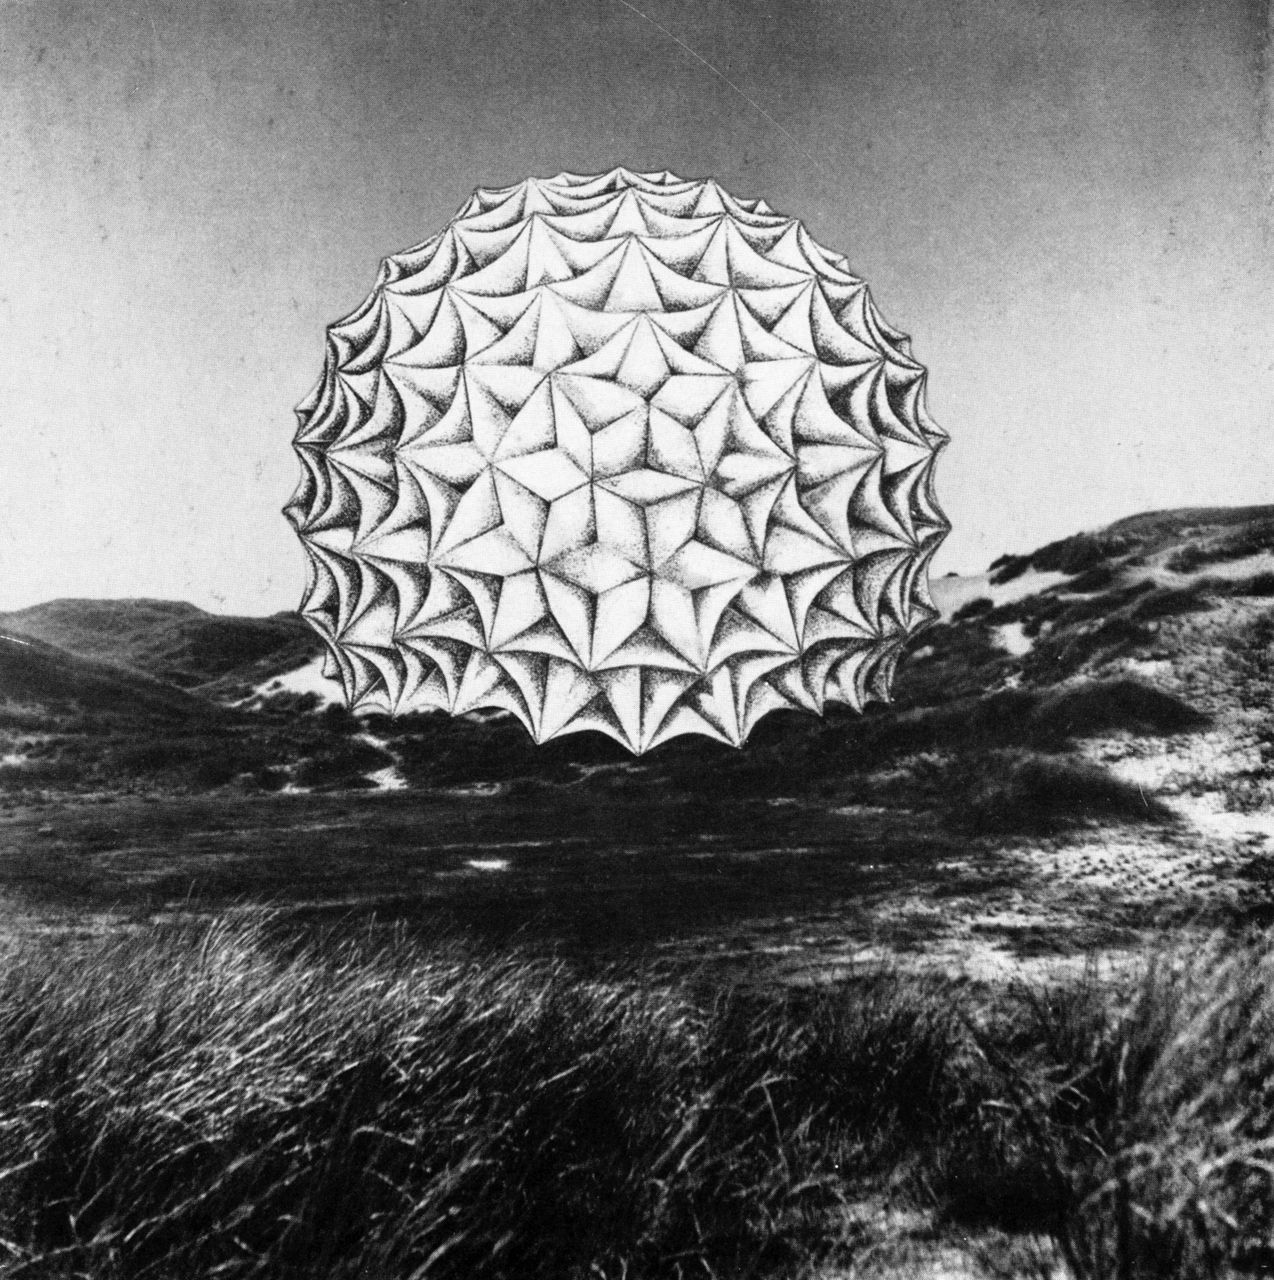 Gunter Gunschel, Project for a Dome Composed of Hyperbolic Paraboloids, 1957